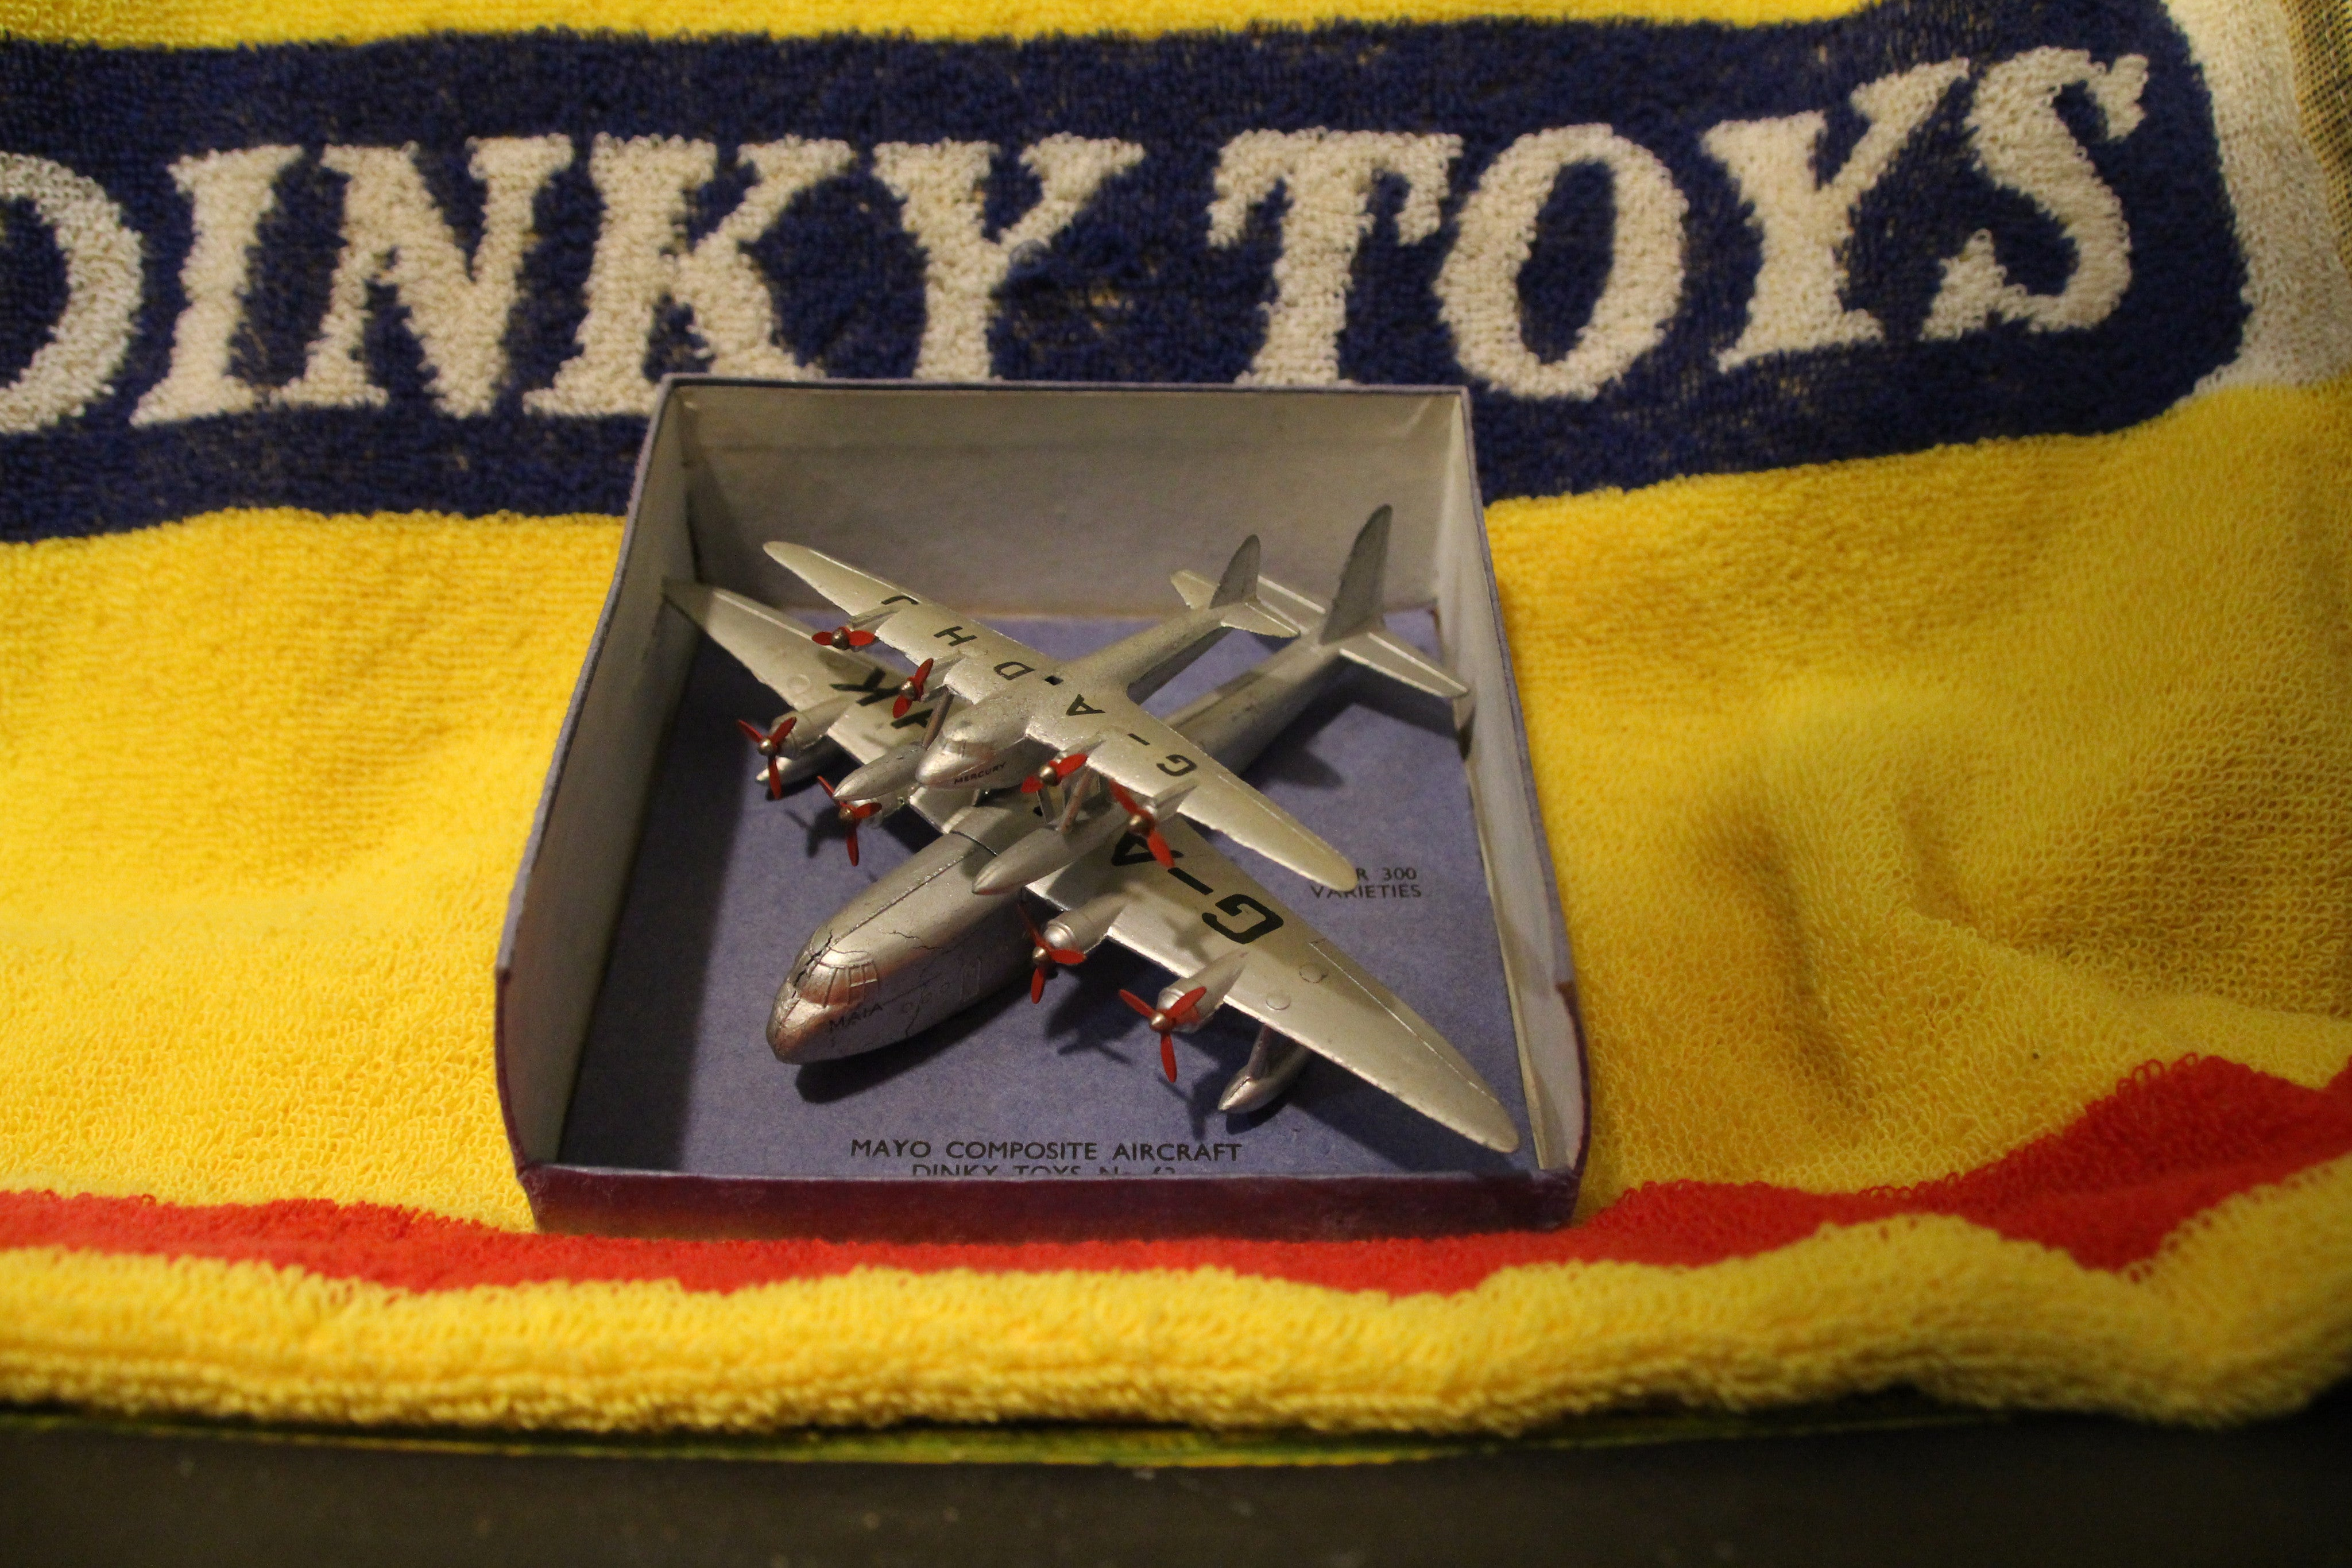 Dinky #63 the most elusive dinky aircraft in mint condition